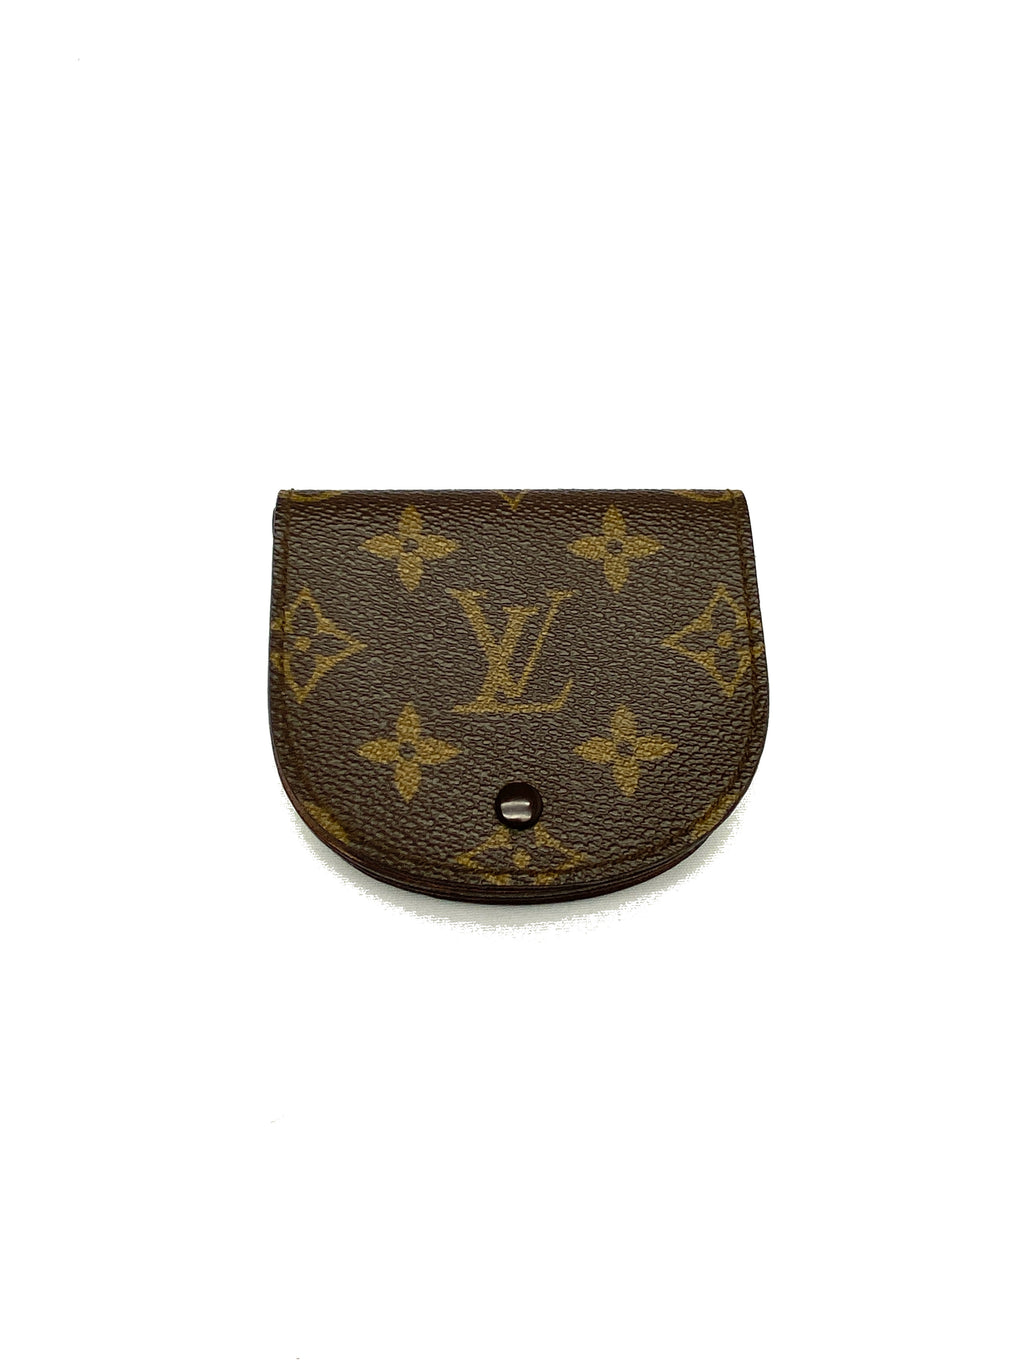 LOUIS VUITTON - MONOGRAM VINTAGE COIN PURSE